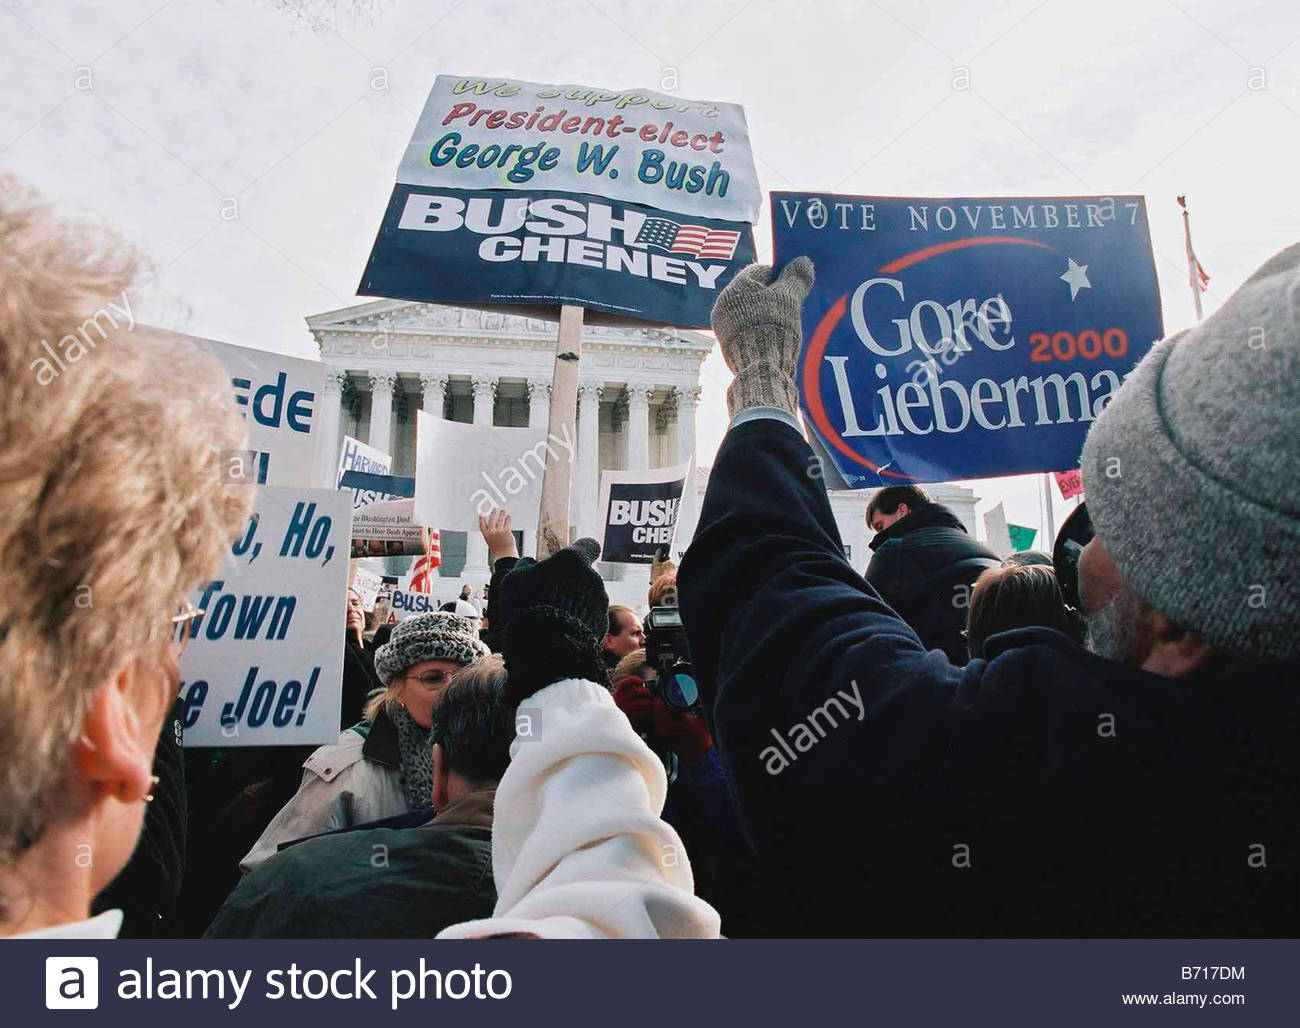 12 1 00 SUPREME COURT HEARING ON PRESIDENTIAL ELECTION Demonstrators outside the U S Supreme Court CONGRESSINAL - Stock Image